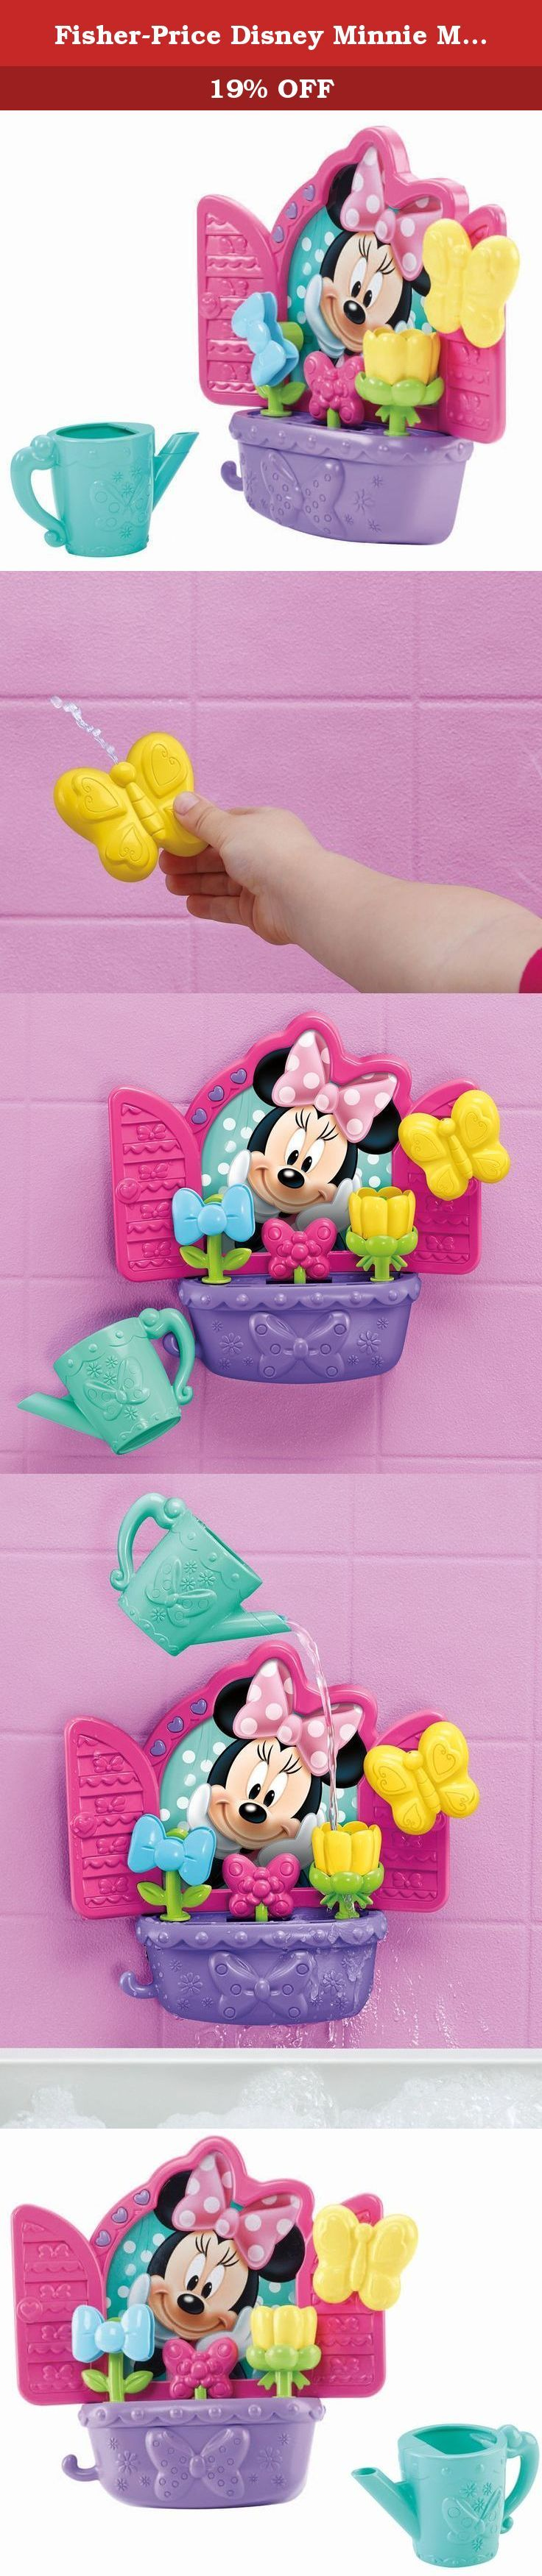 Fisher-Price Disney Minnie Mouse Bow-tiful Bath Blooms. Water makes Minnie's flowers grow and spin and twirl! Suction Minnie's windowsill and flower box onto your bathtub or shower wall and use the watering can to make the Bow-tiful Bath Blooms come to life! Pour the water and the bow flower spins like a pinwheel while the tulip twirls and the middle flower begins to grow! You can also water from afar by using the butterfly squitter to spray the flowers! The watering can and butterfly...